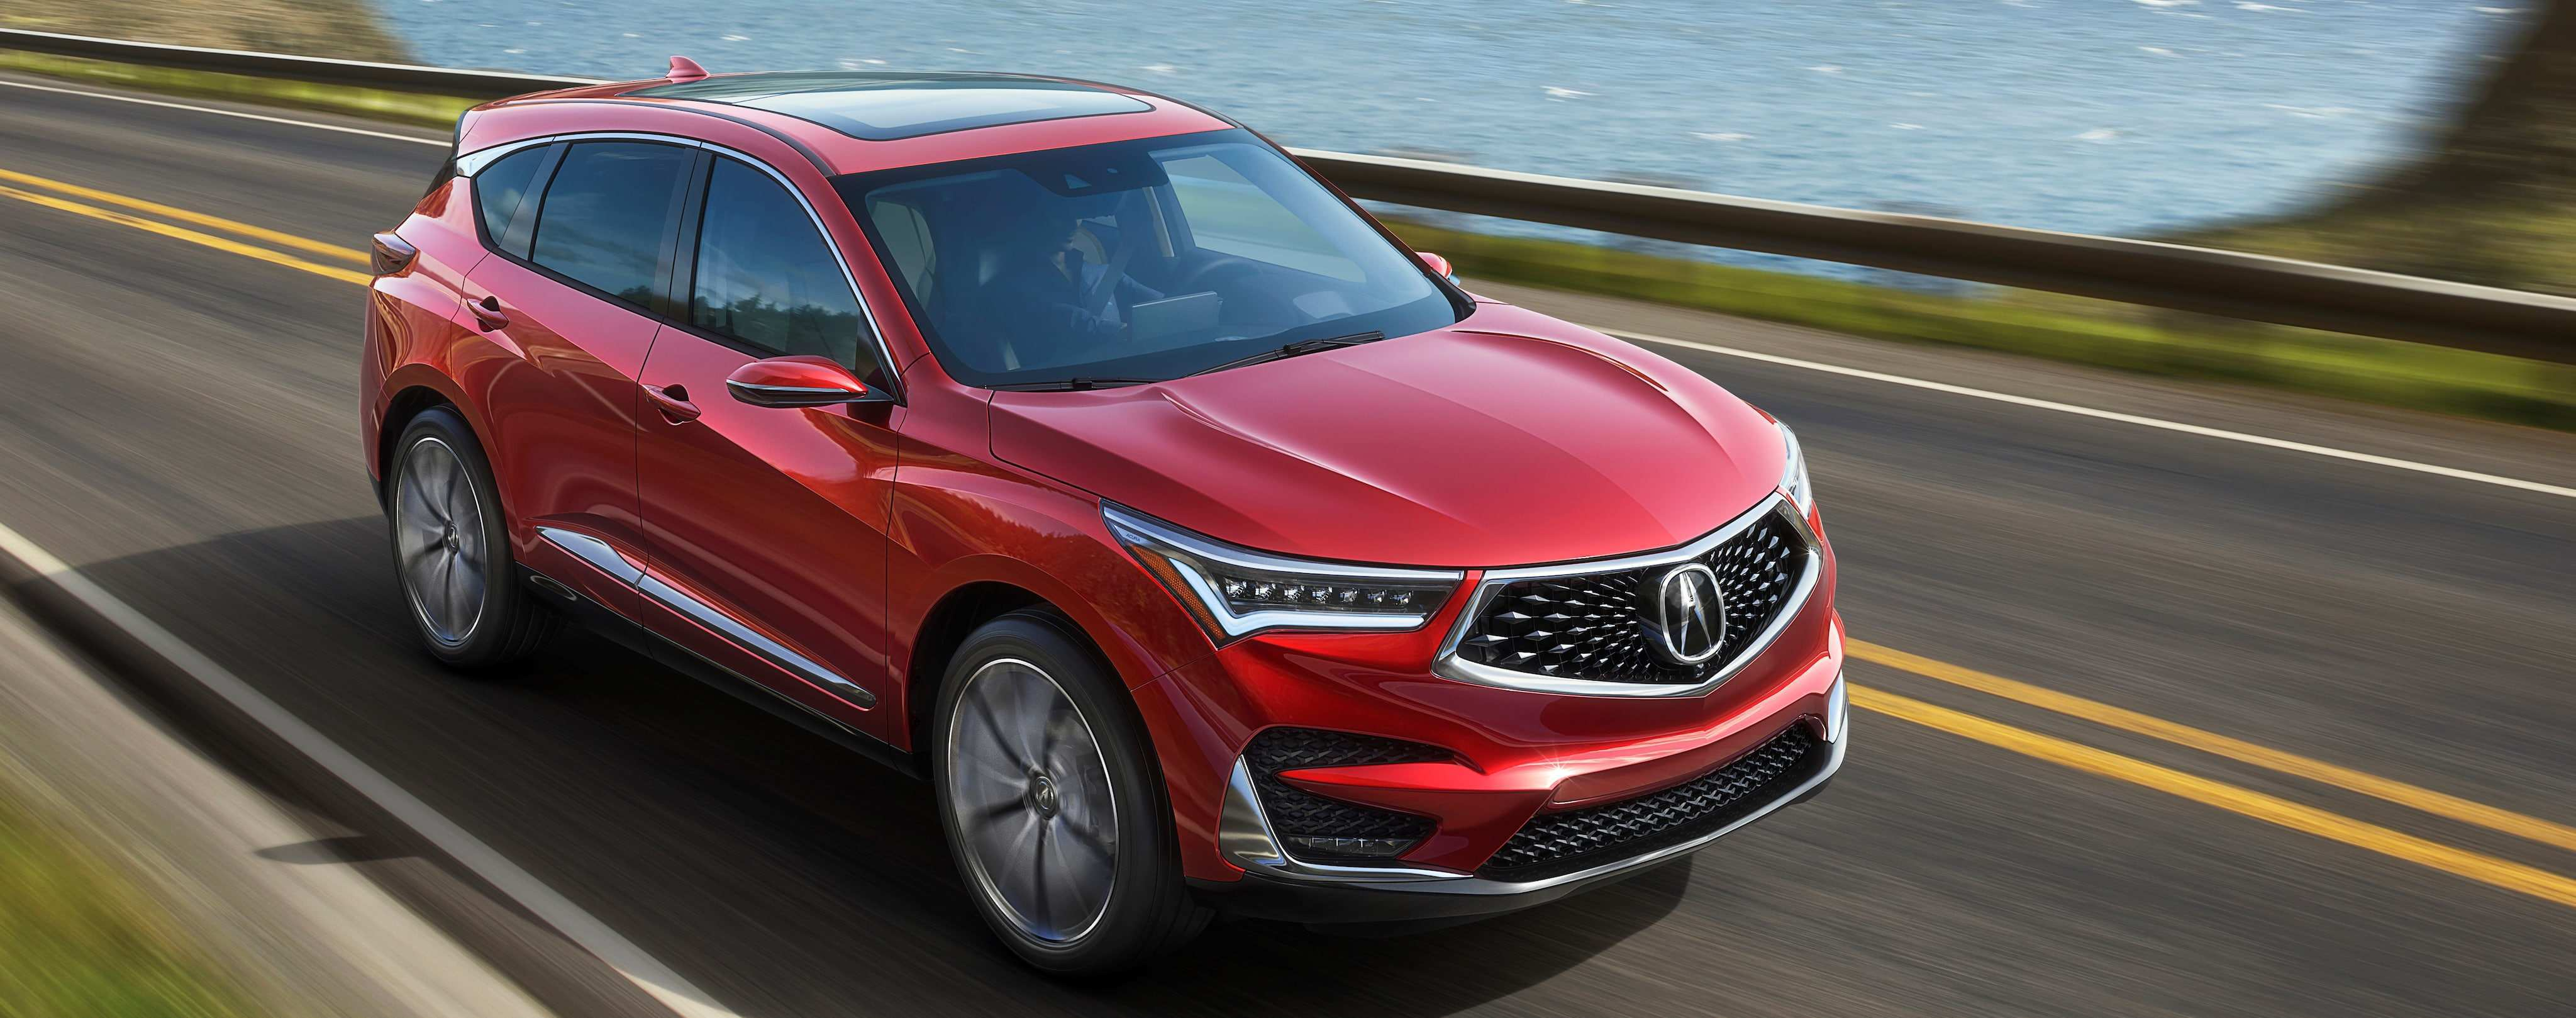 98 New 2019 Acura Rdx Lease Prices Release Date Exterior and Interior for 2019 Acura Rdx Lease Prices Release Date